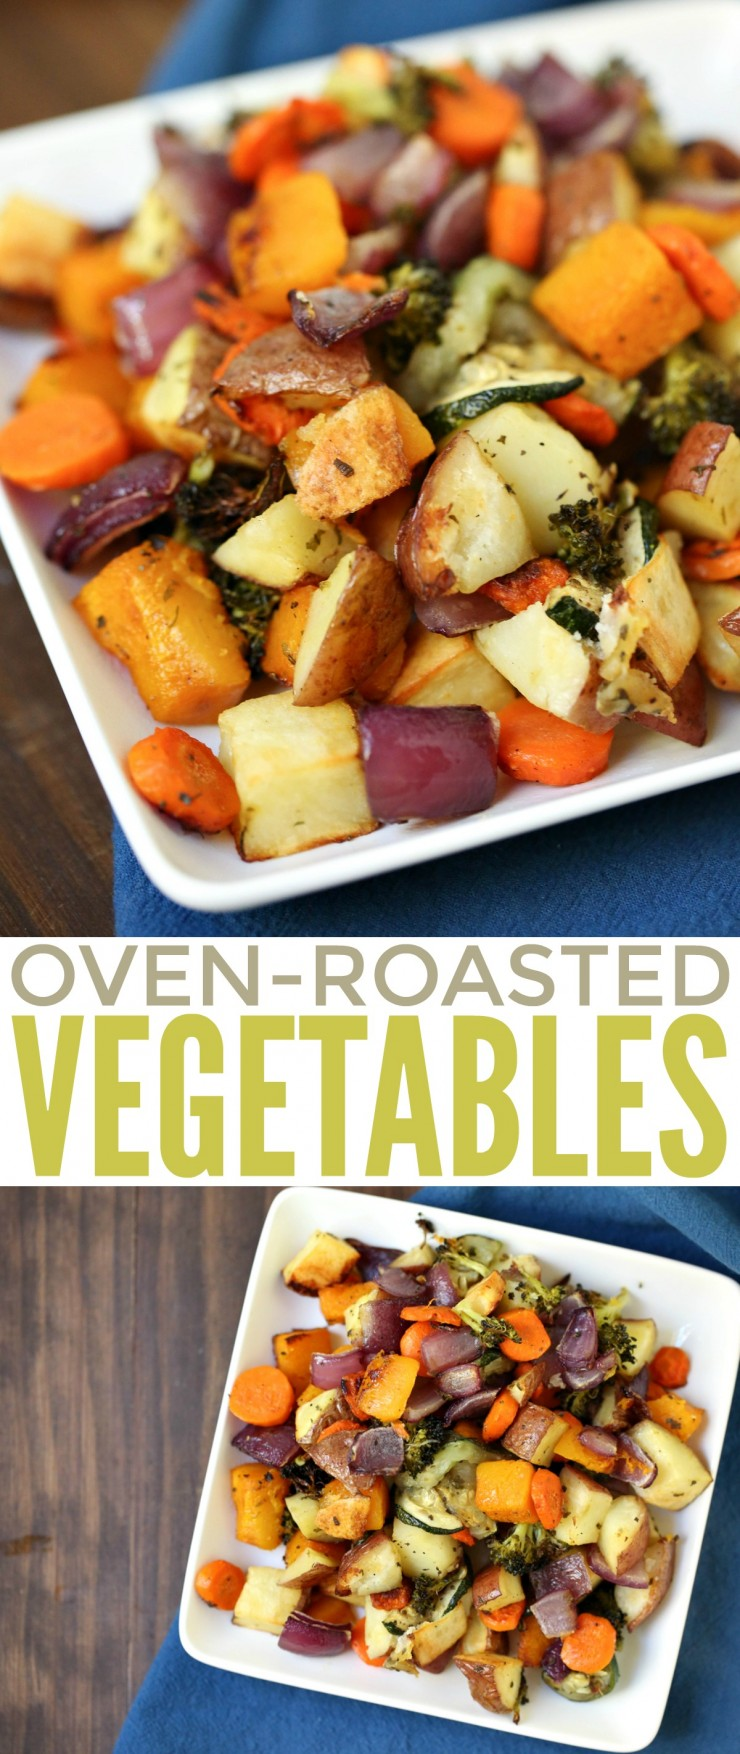 Oven-Roasted Vegetables are a delicious side dish staple your family can enjoy all year round as part of your dinner menu. It's a healthy and super delicious way to get your veg in!